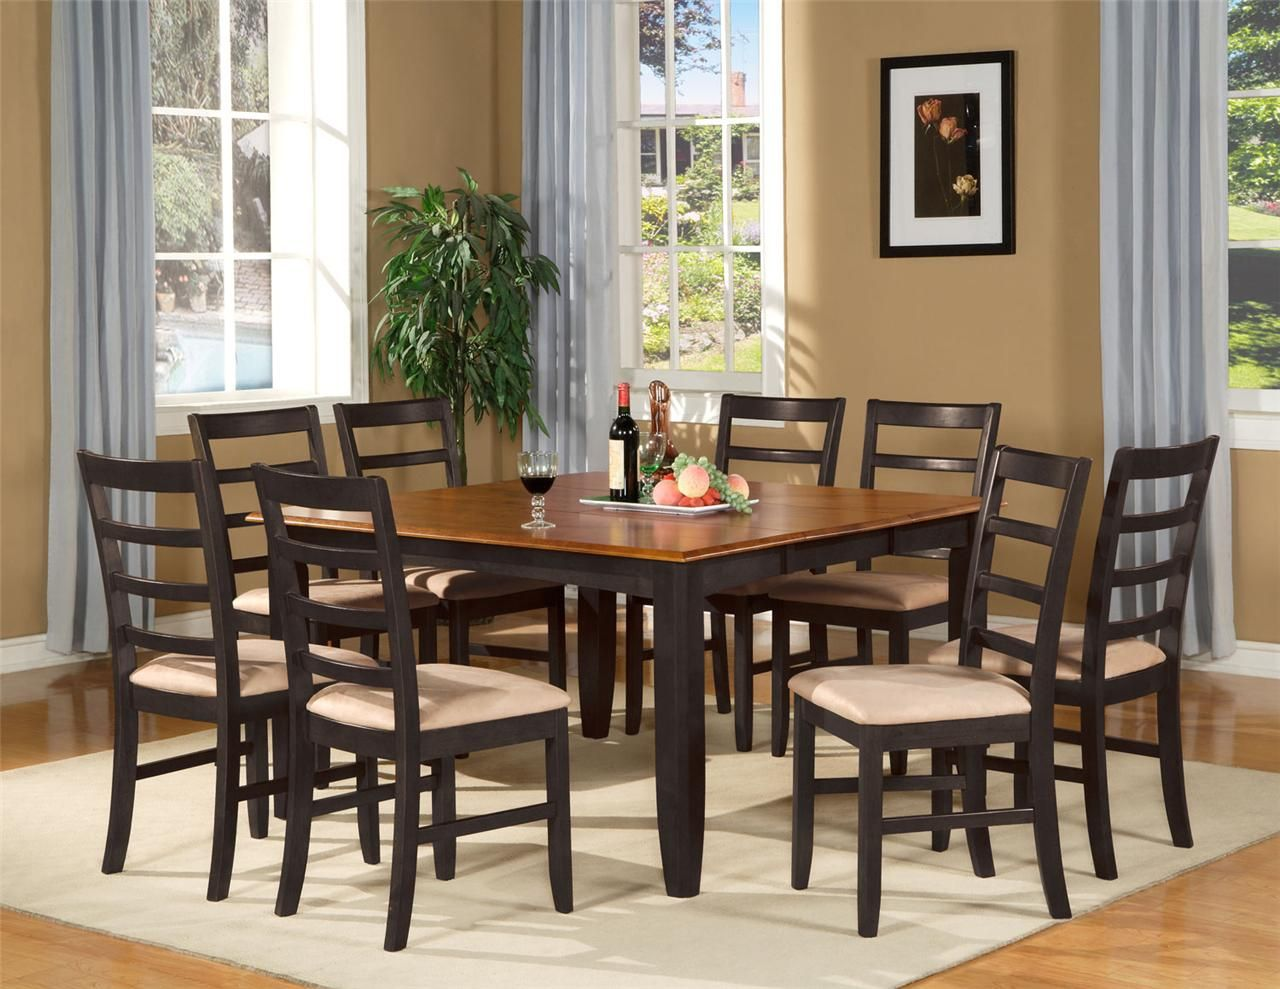 9 Pc Square Dinette Dining Room Table Set And 8 Chairs Square Dining Room Table Dining Room Table Set Square Dining Table Set